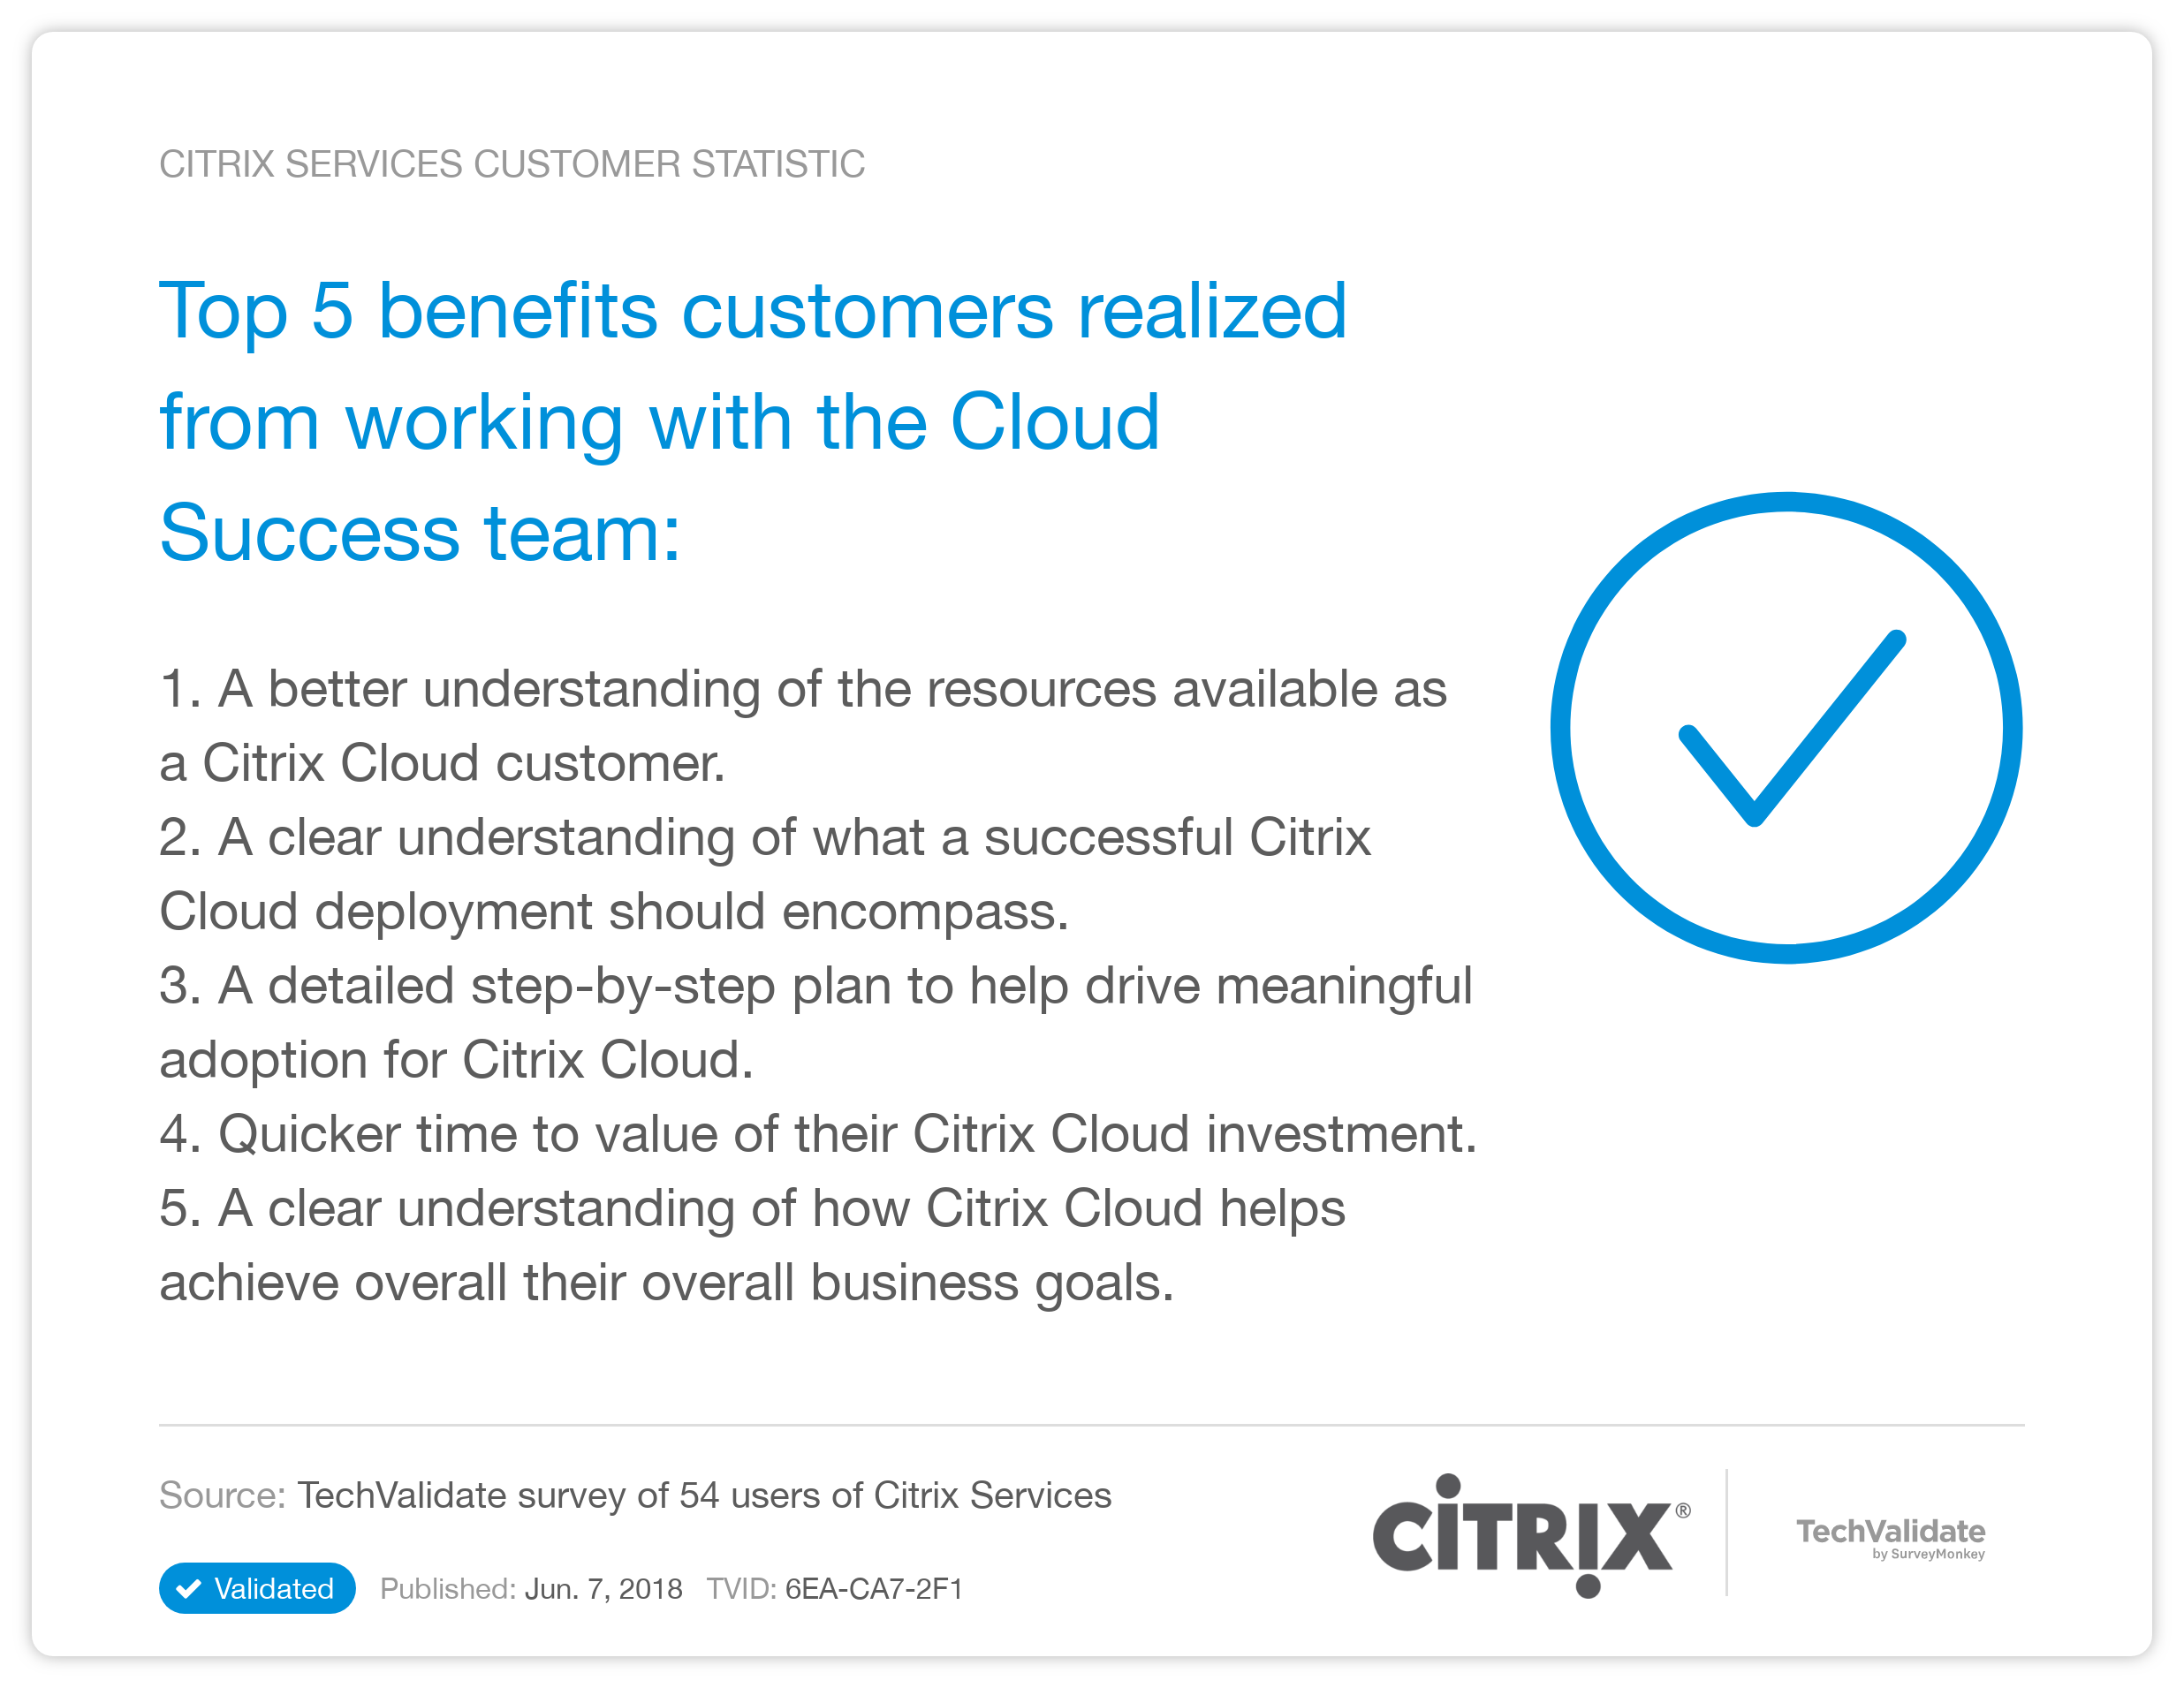 Citrix Services TechFact: Top 5 benefits customers realized from